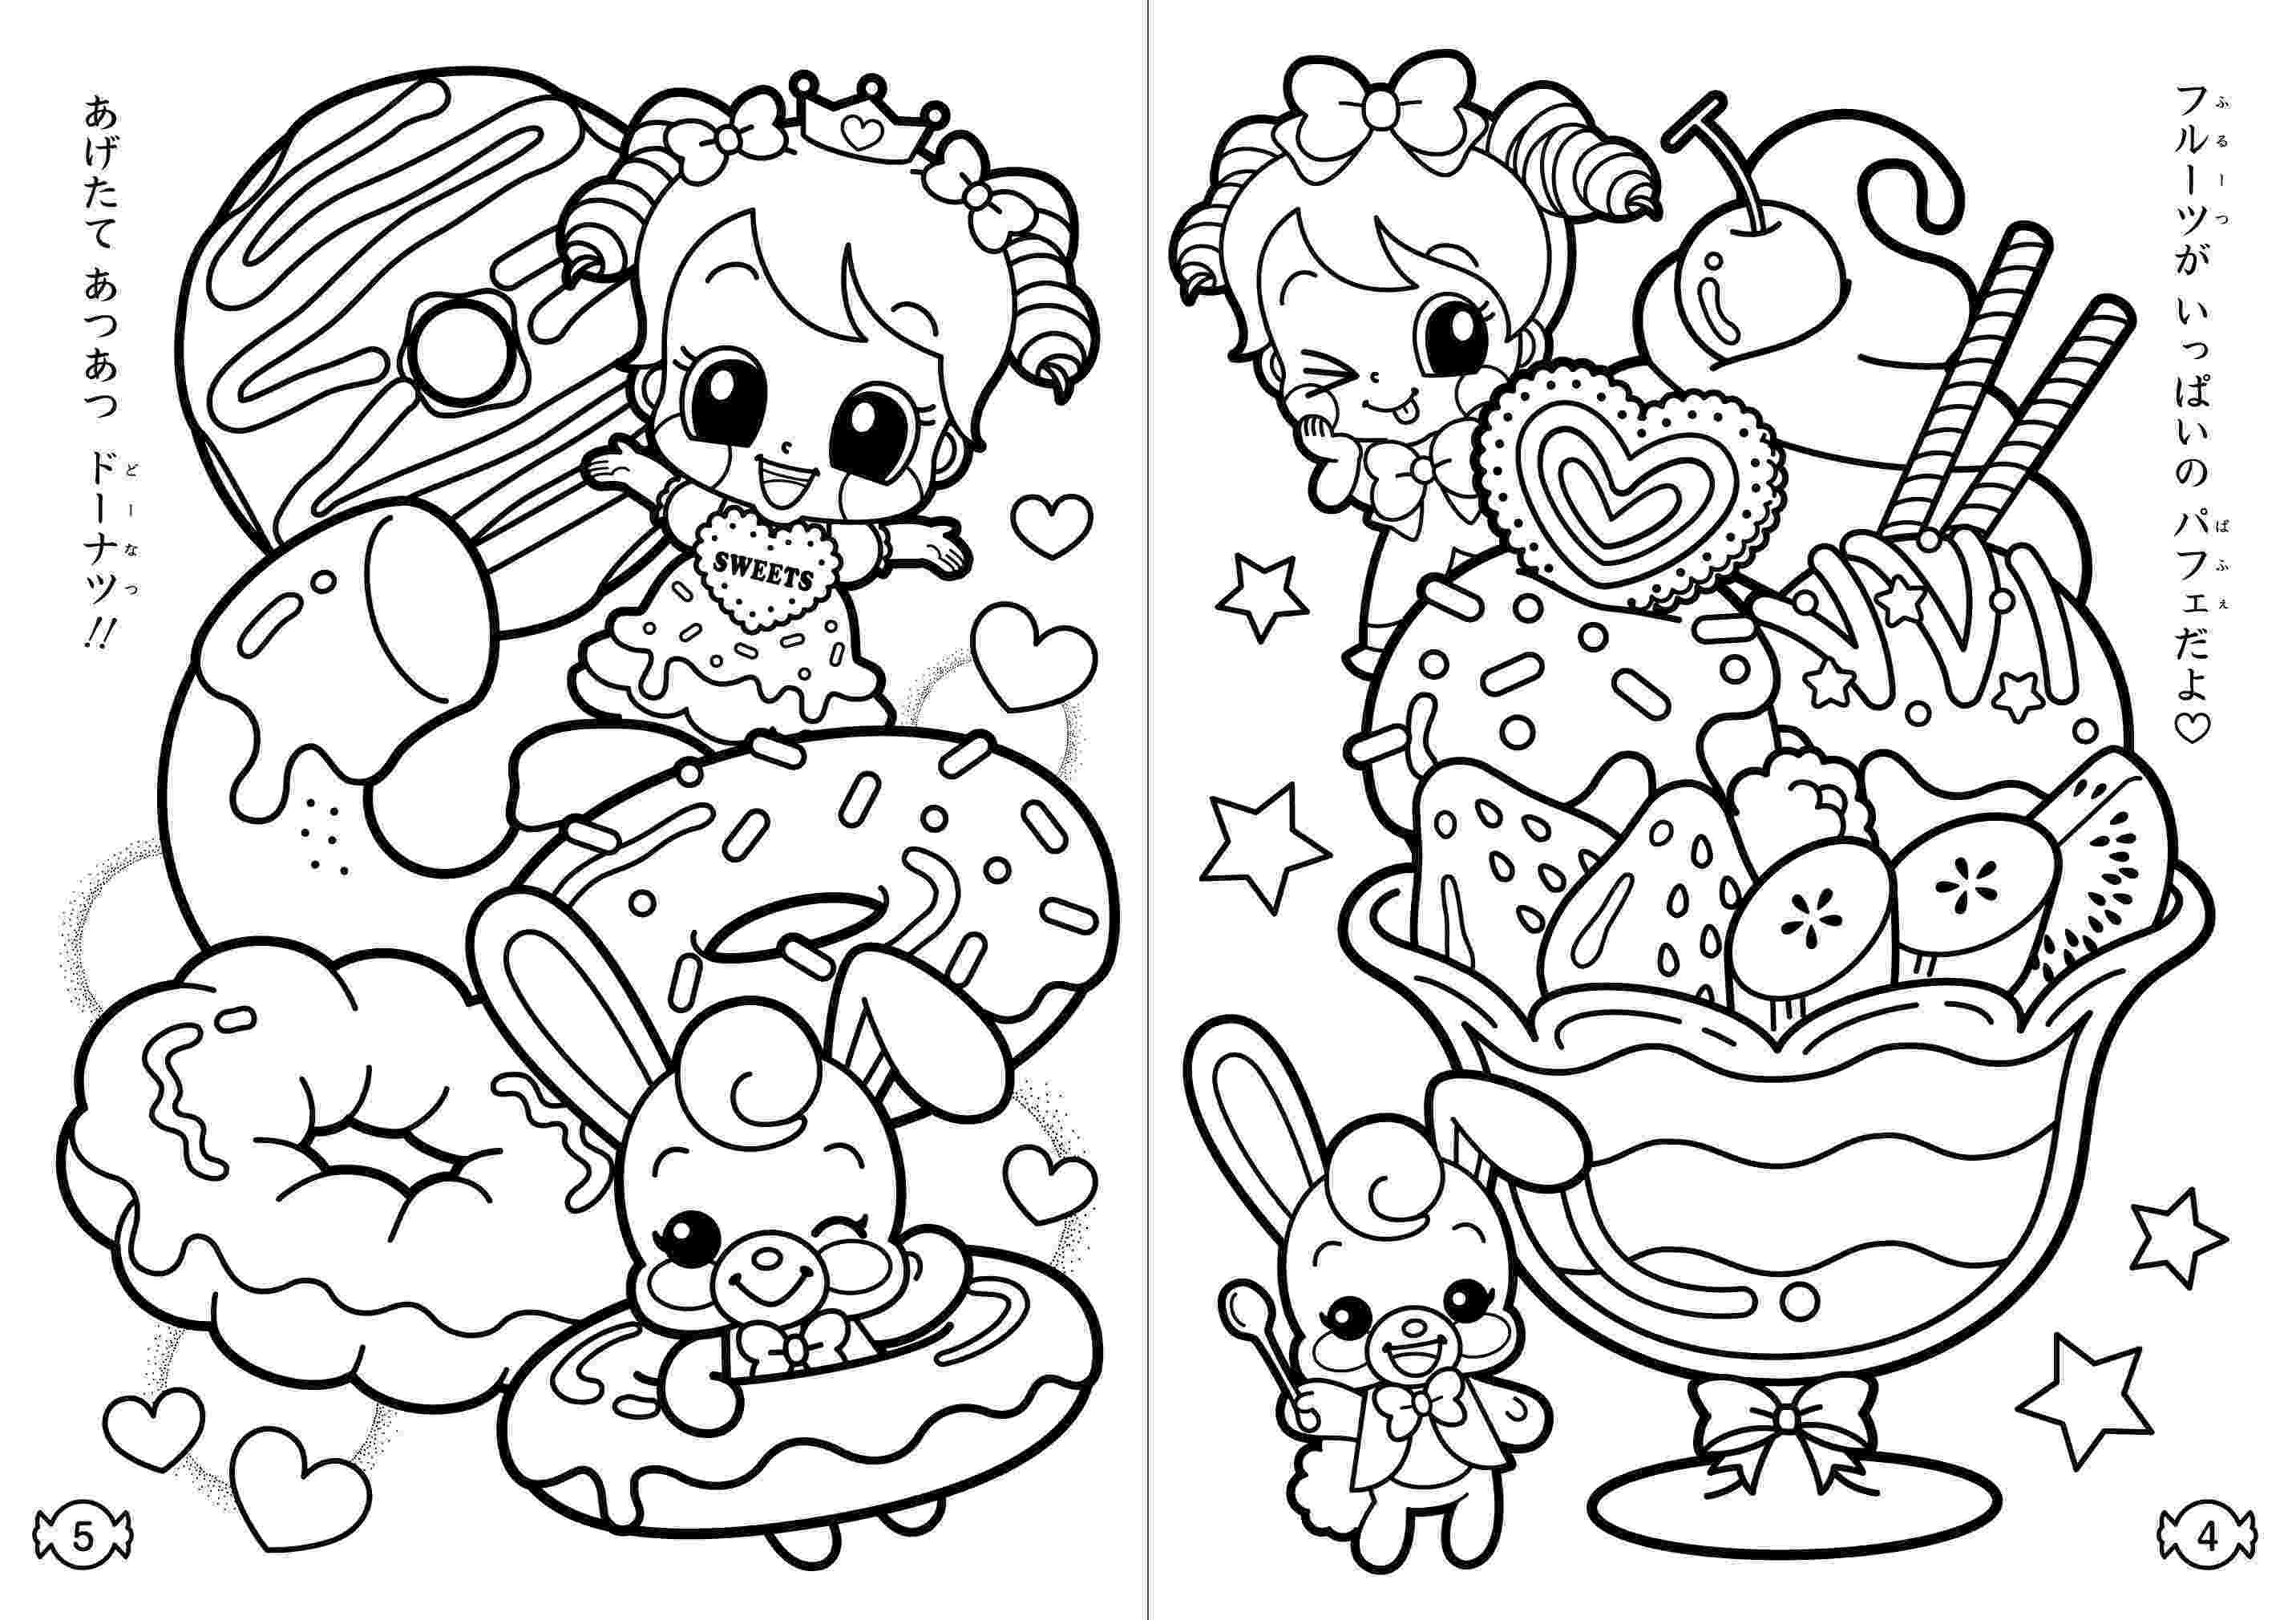 colouring food pictures coloring pages cute food fresh kawaii mr dong 7619d8a2e3 food colouring pictures